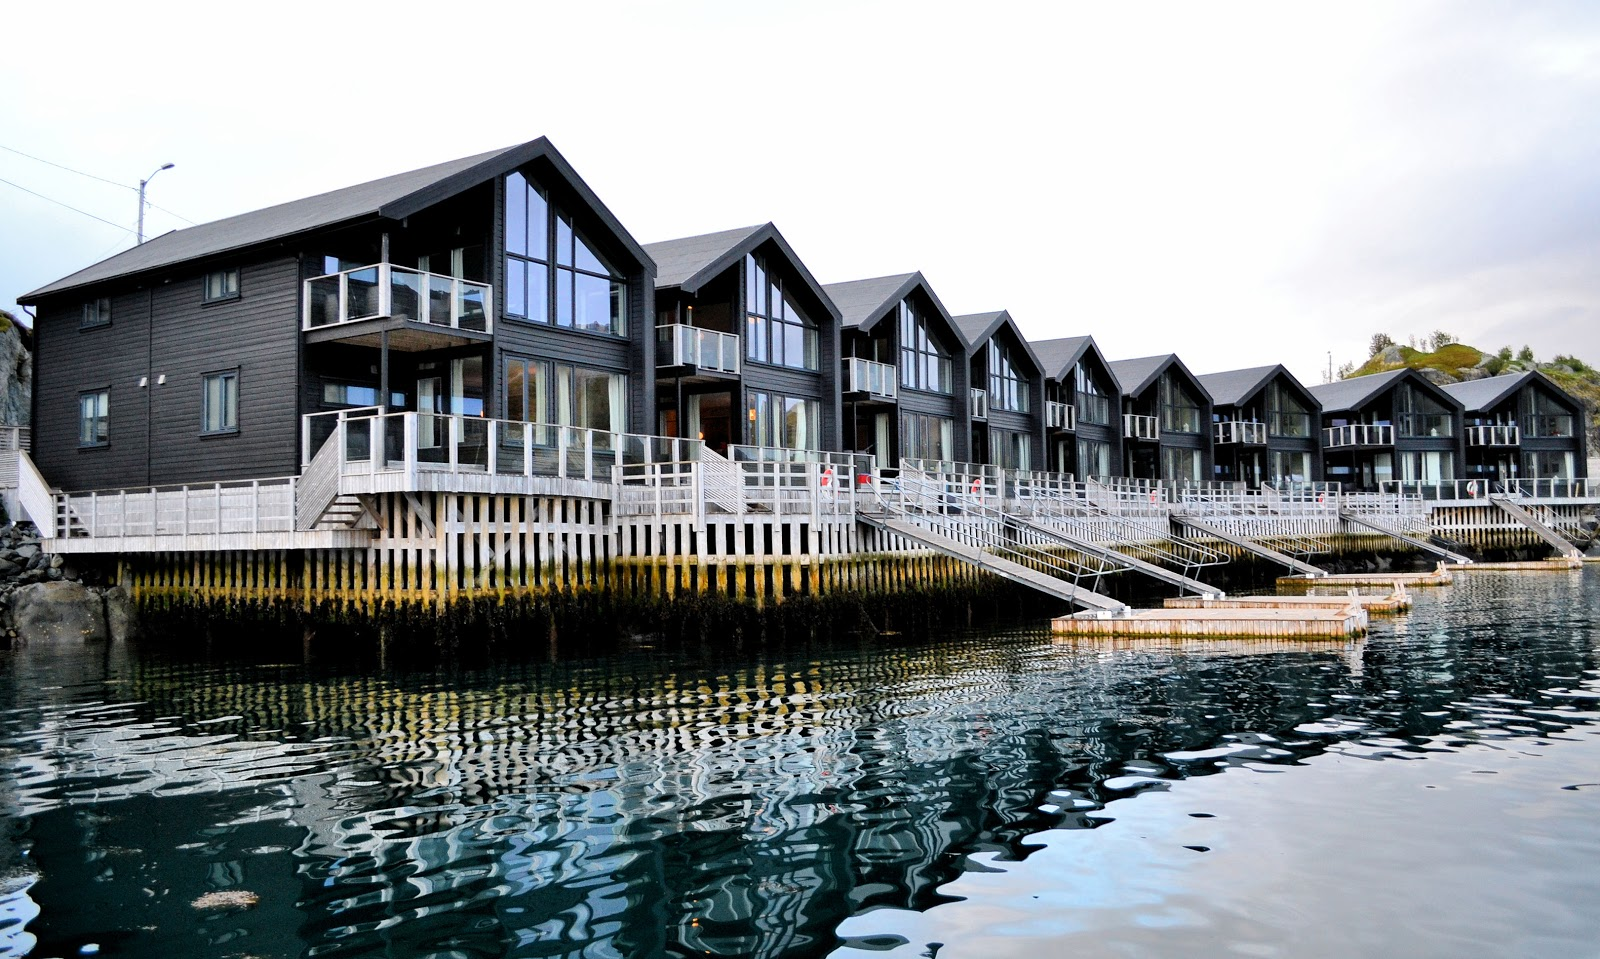 Hamn I Senja rorbuer are at the deluxe end of the spectrum featuring 2-bedroom villas with living, dining, kitchen and balconies along the water's edge.